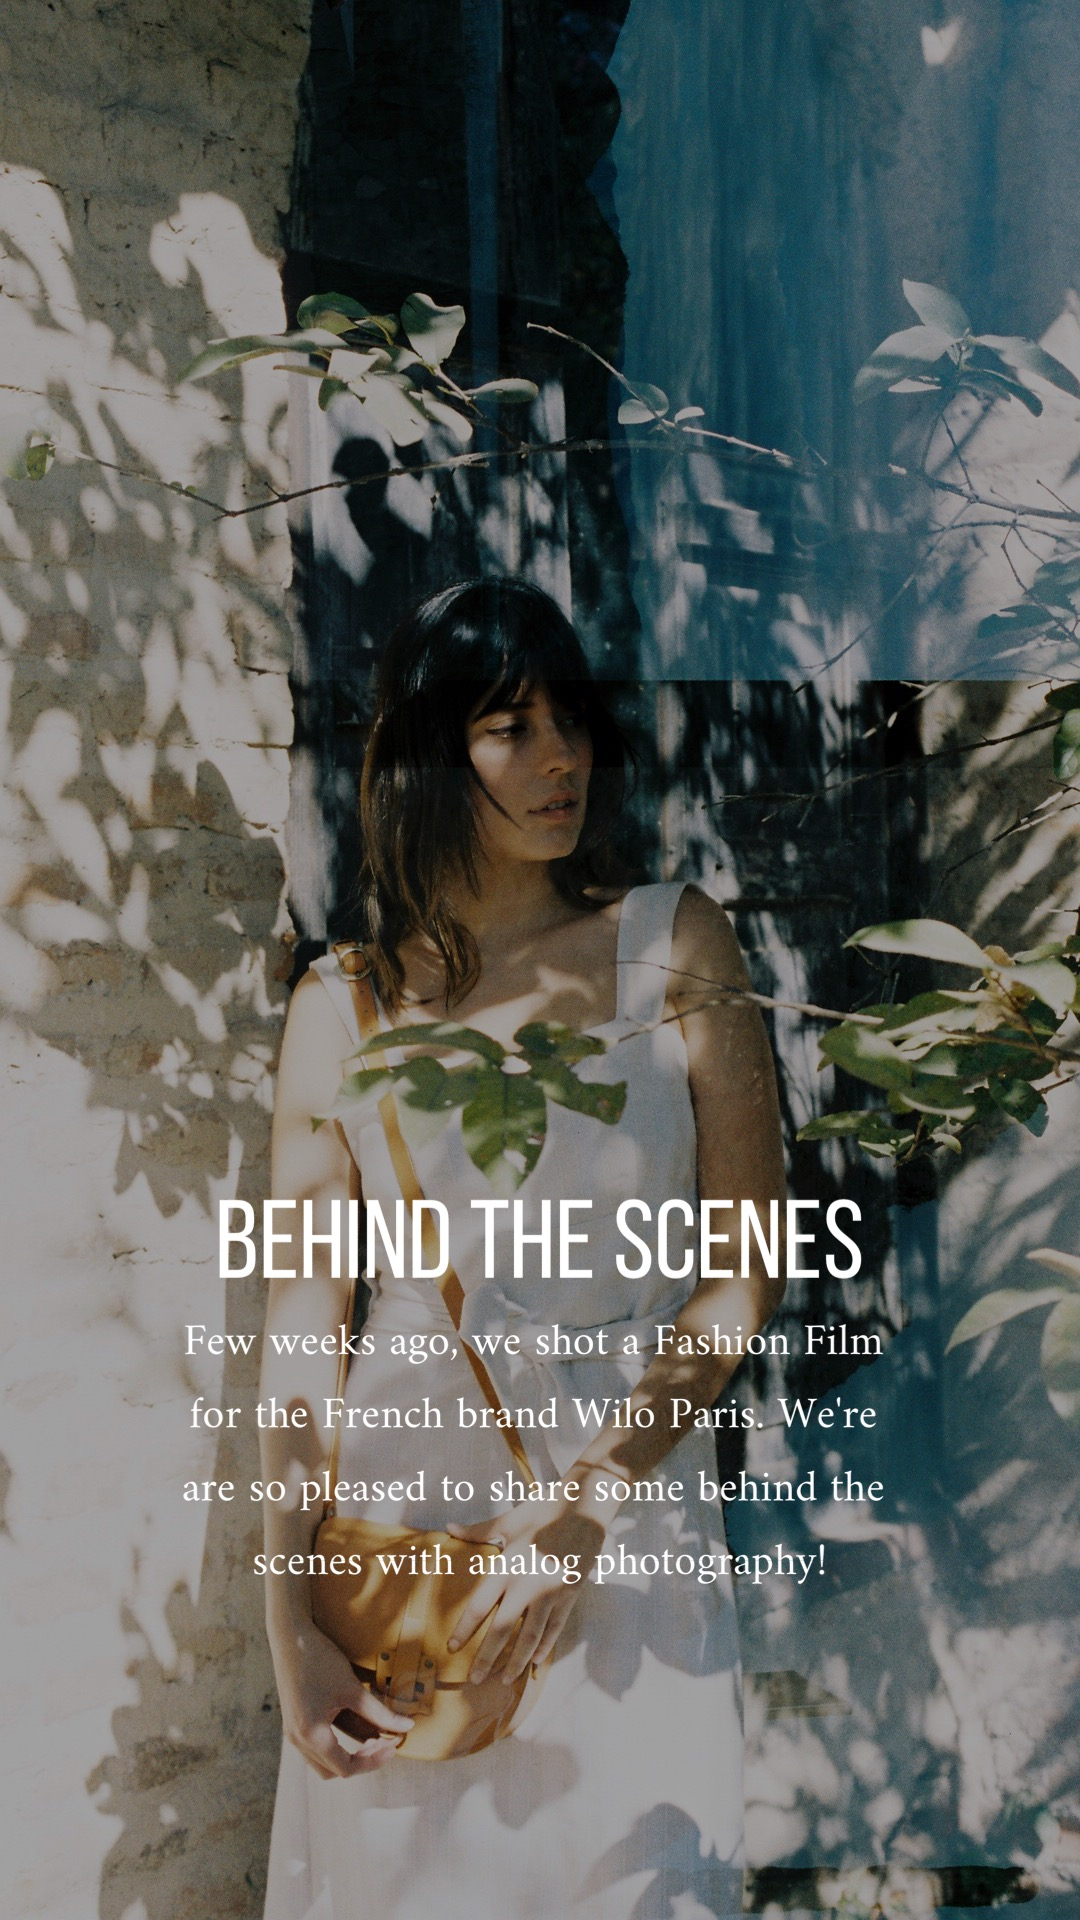 behind-the-scenes-wilo-summer-campaign-dstn-analog-photography-1.JPG